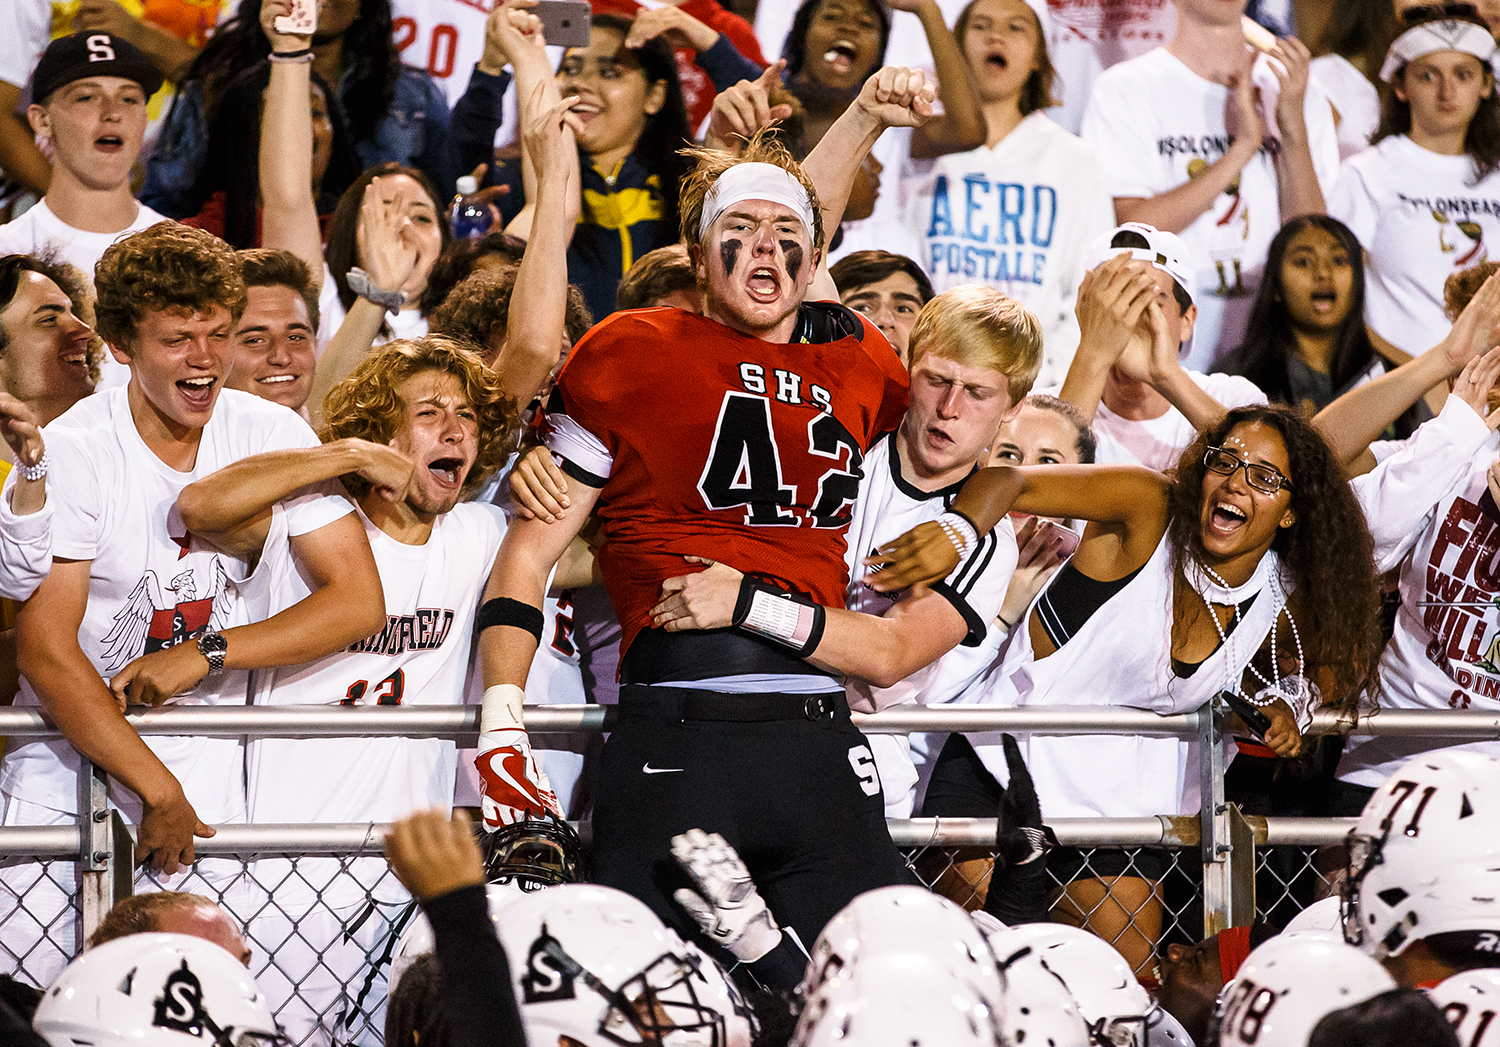 Springfield's David Brandt celebrates with the student section after Springfield defeated Normal U-High 42-21 at Memorial Stadium Aug. 25. Justin L. Fowler/The State Journal-Register